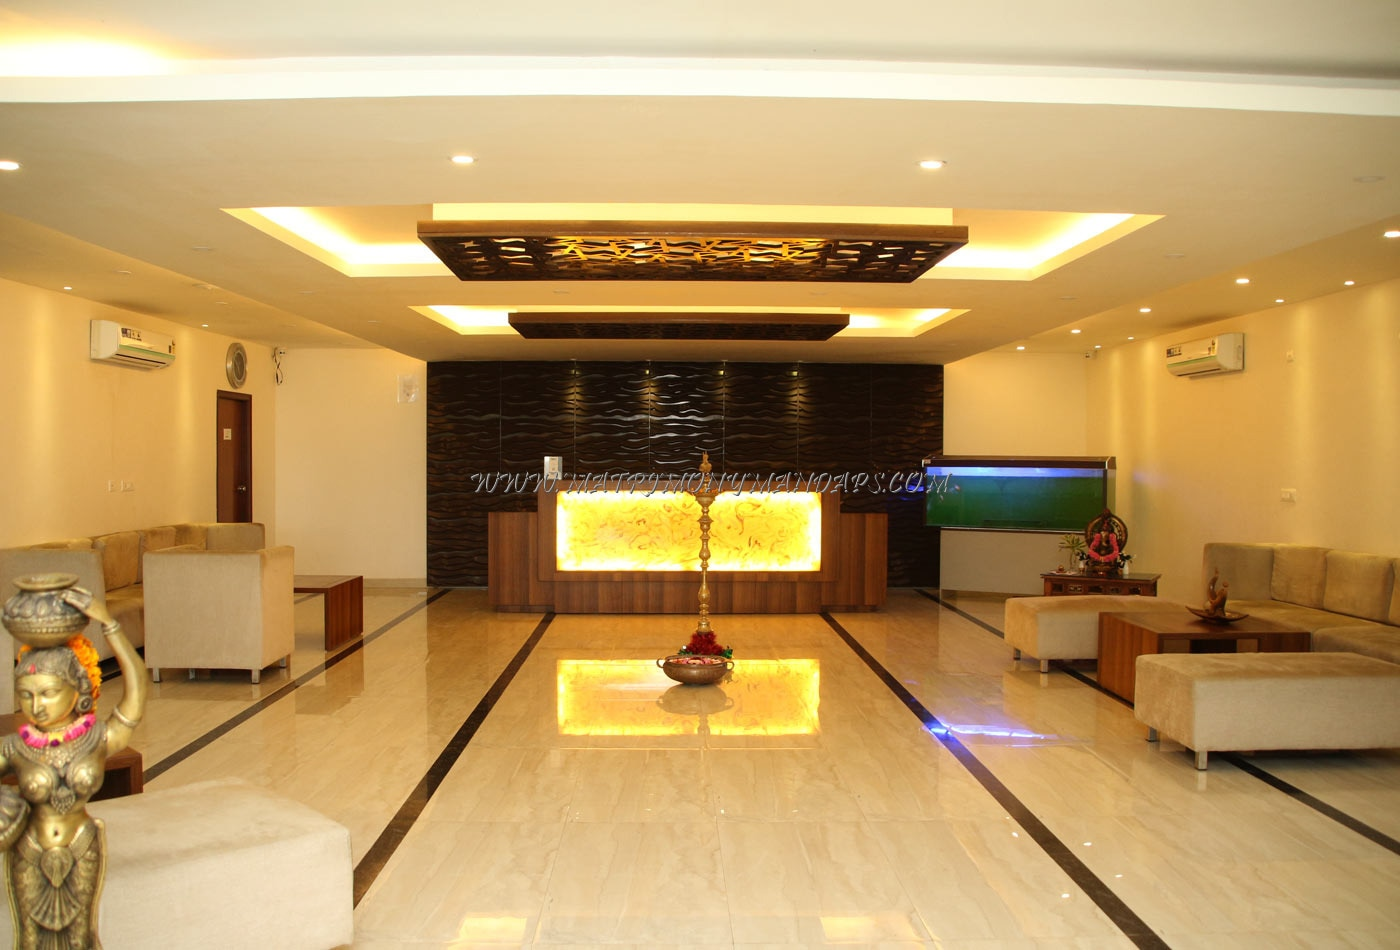 Find the availability of the Imera Spa in sarjapur road, Bangalore and avail special offers